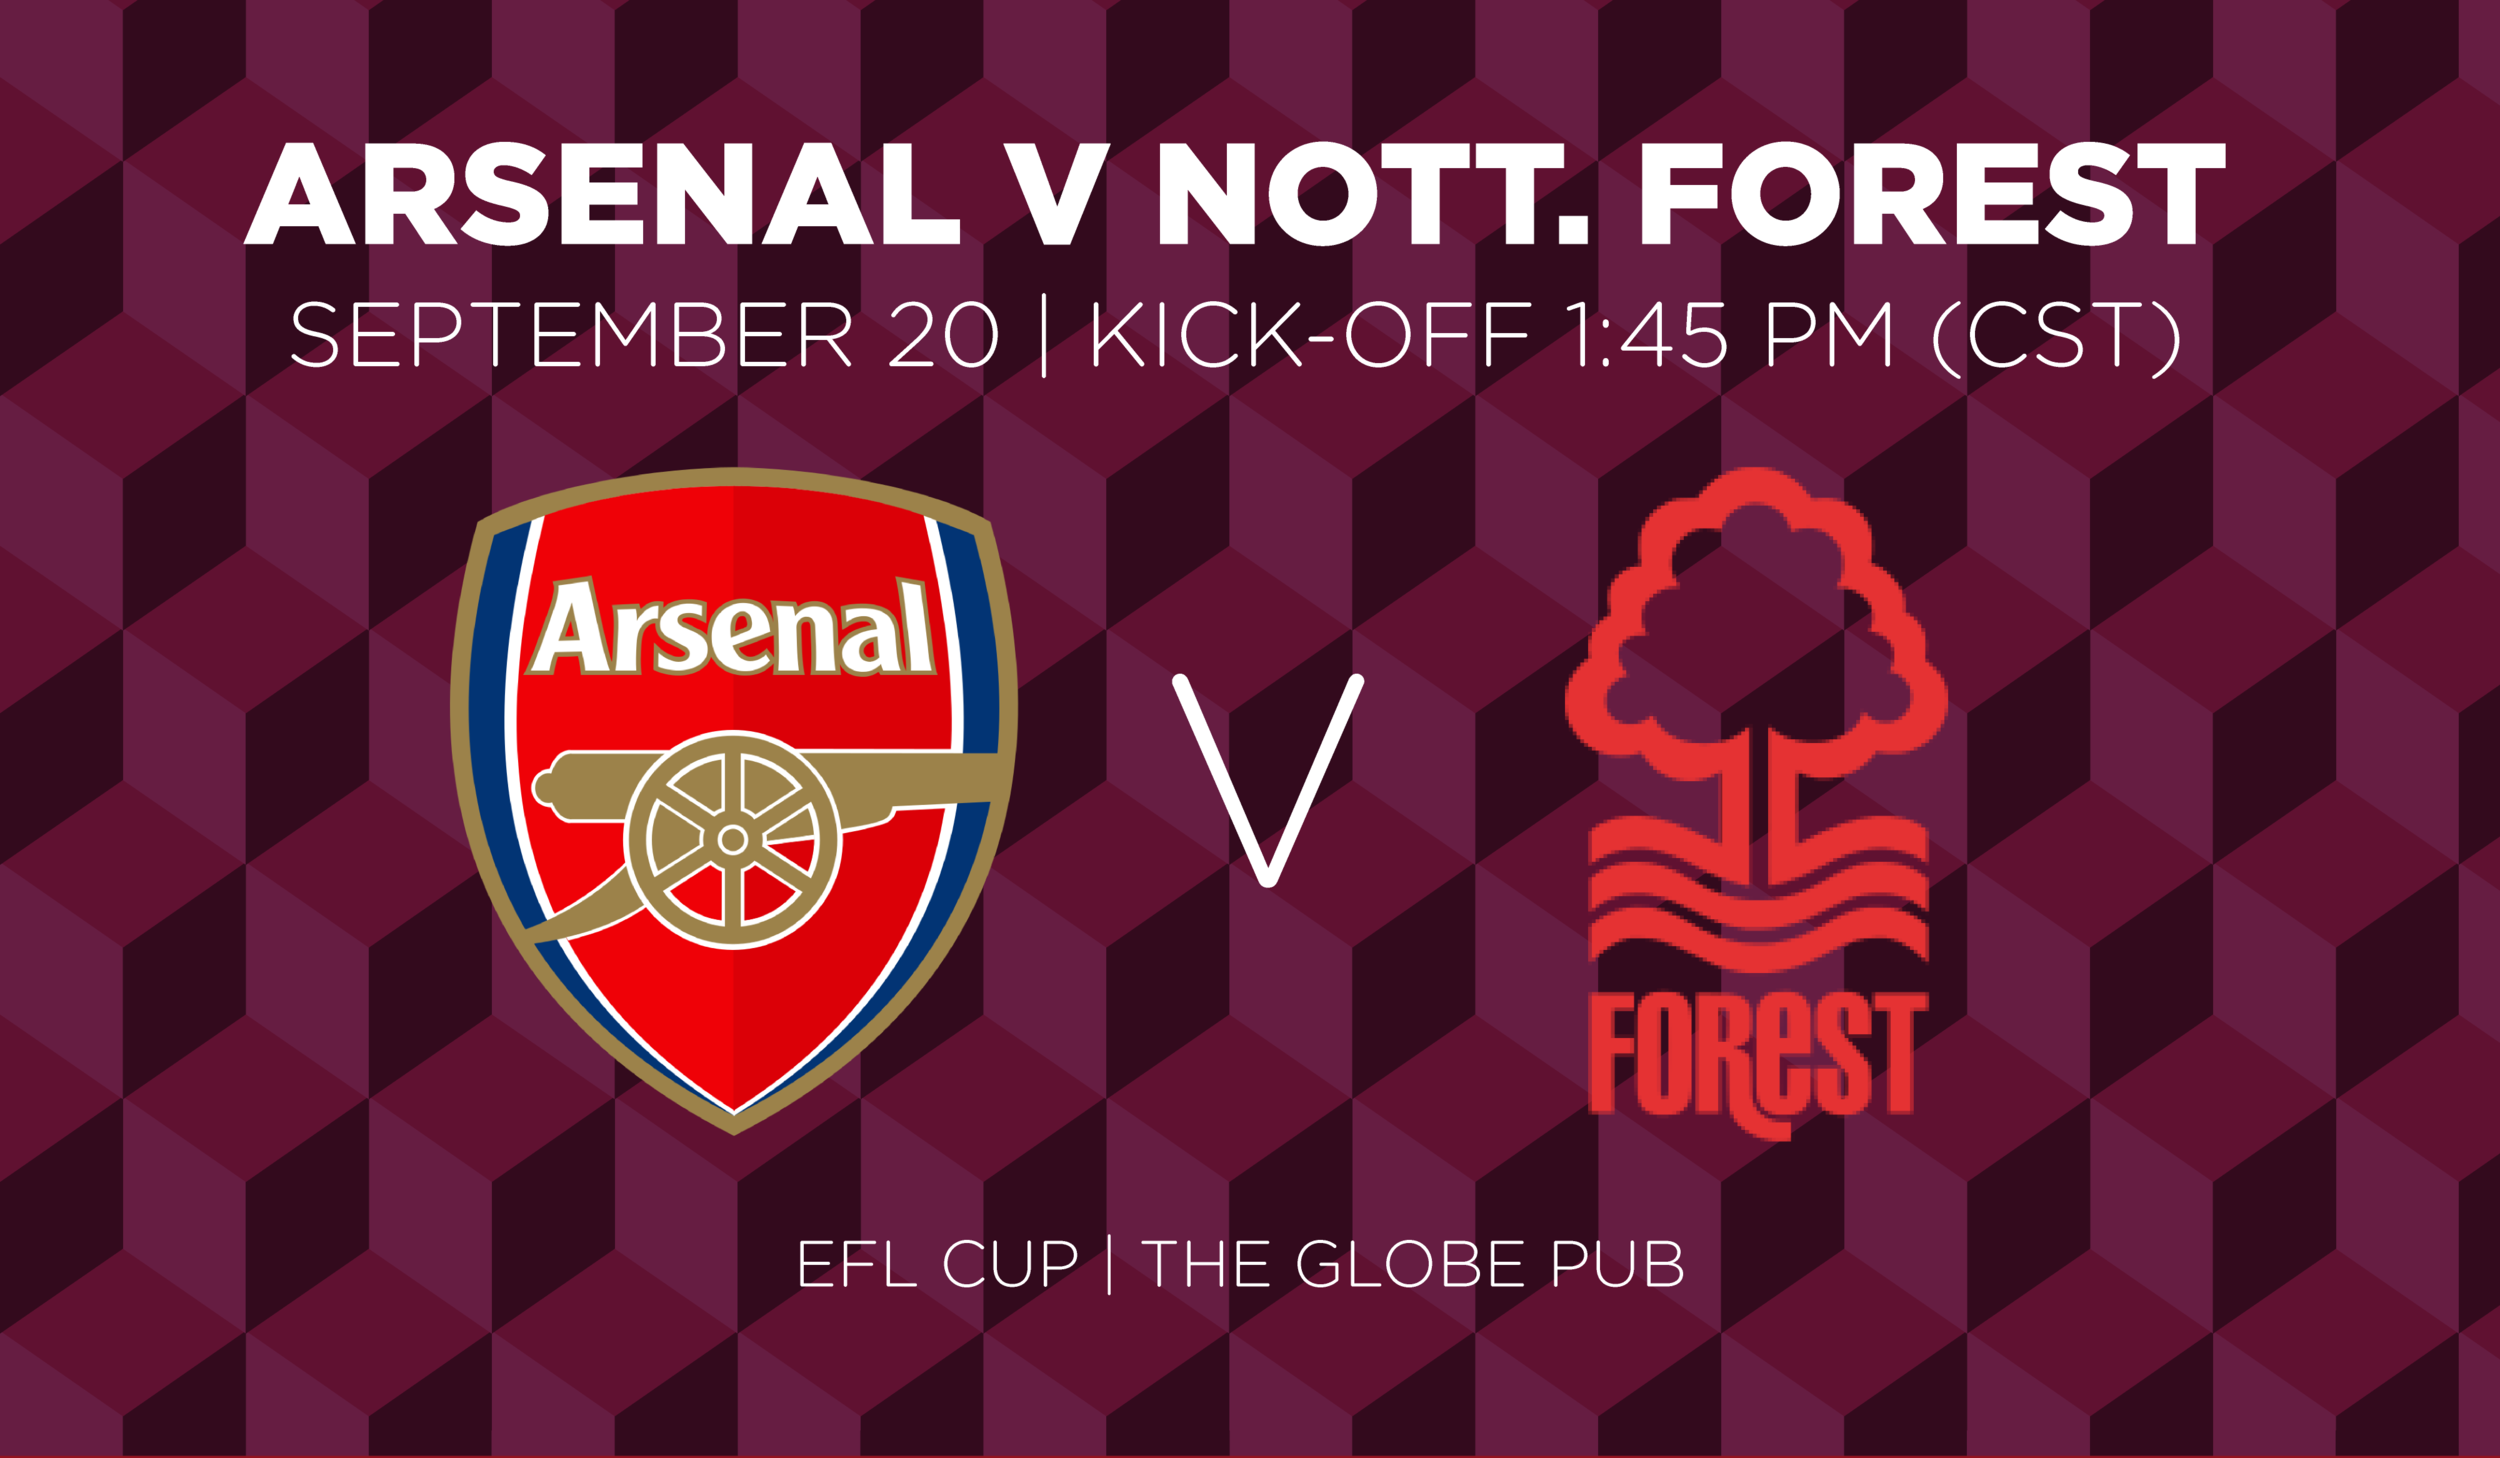 Arsenal V Nottingham Forest